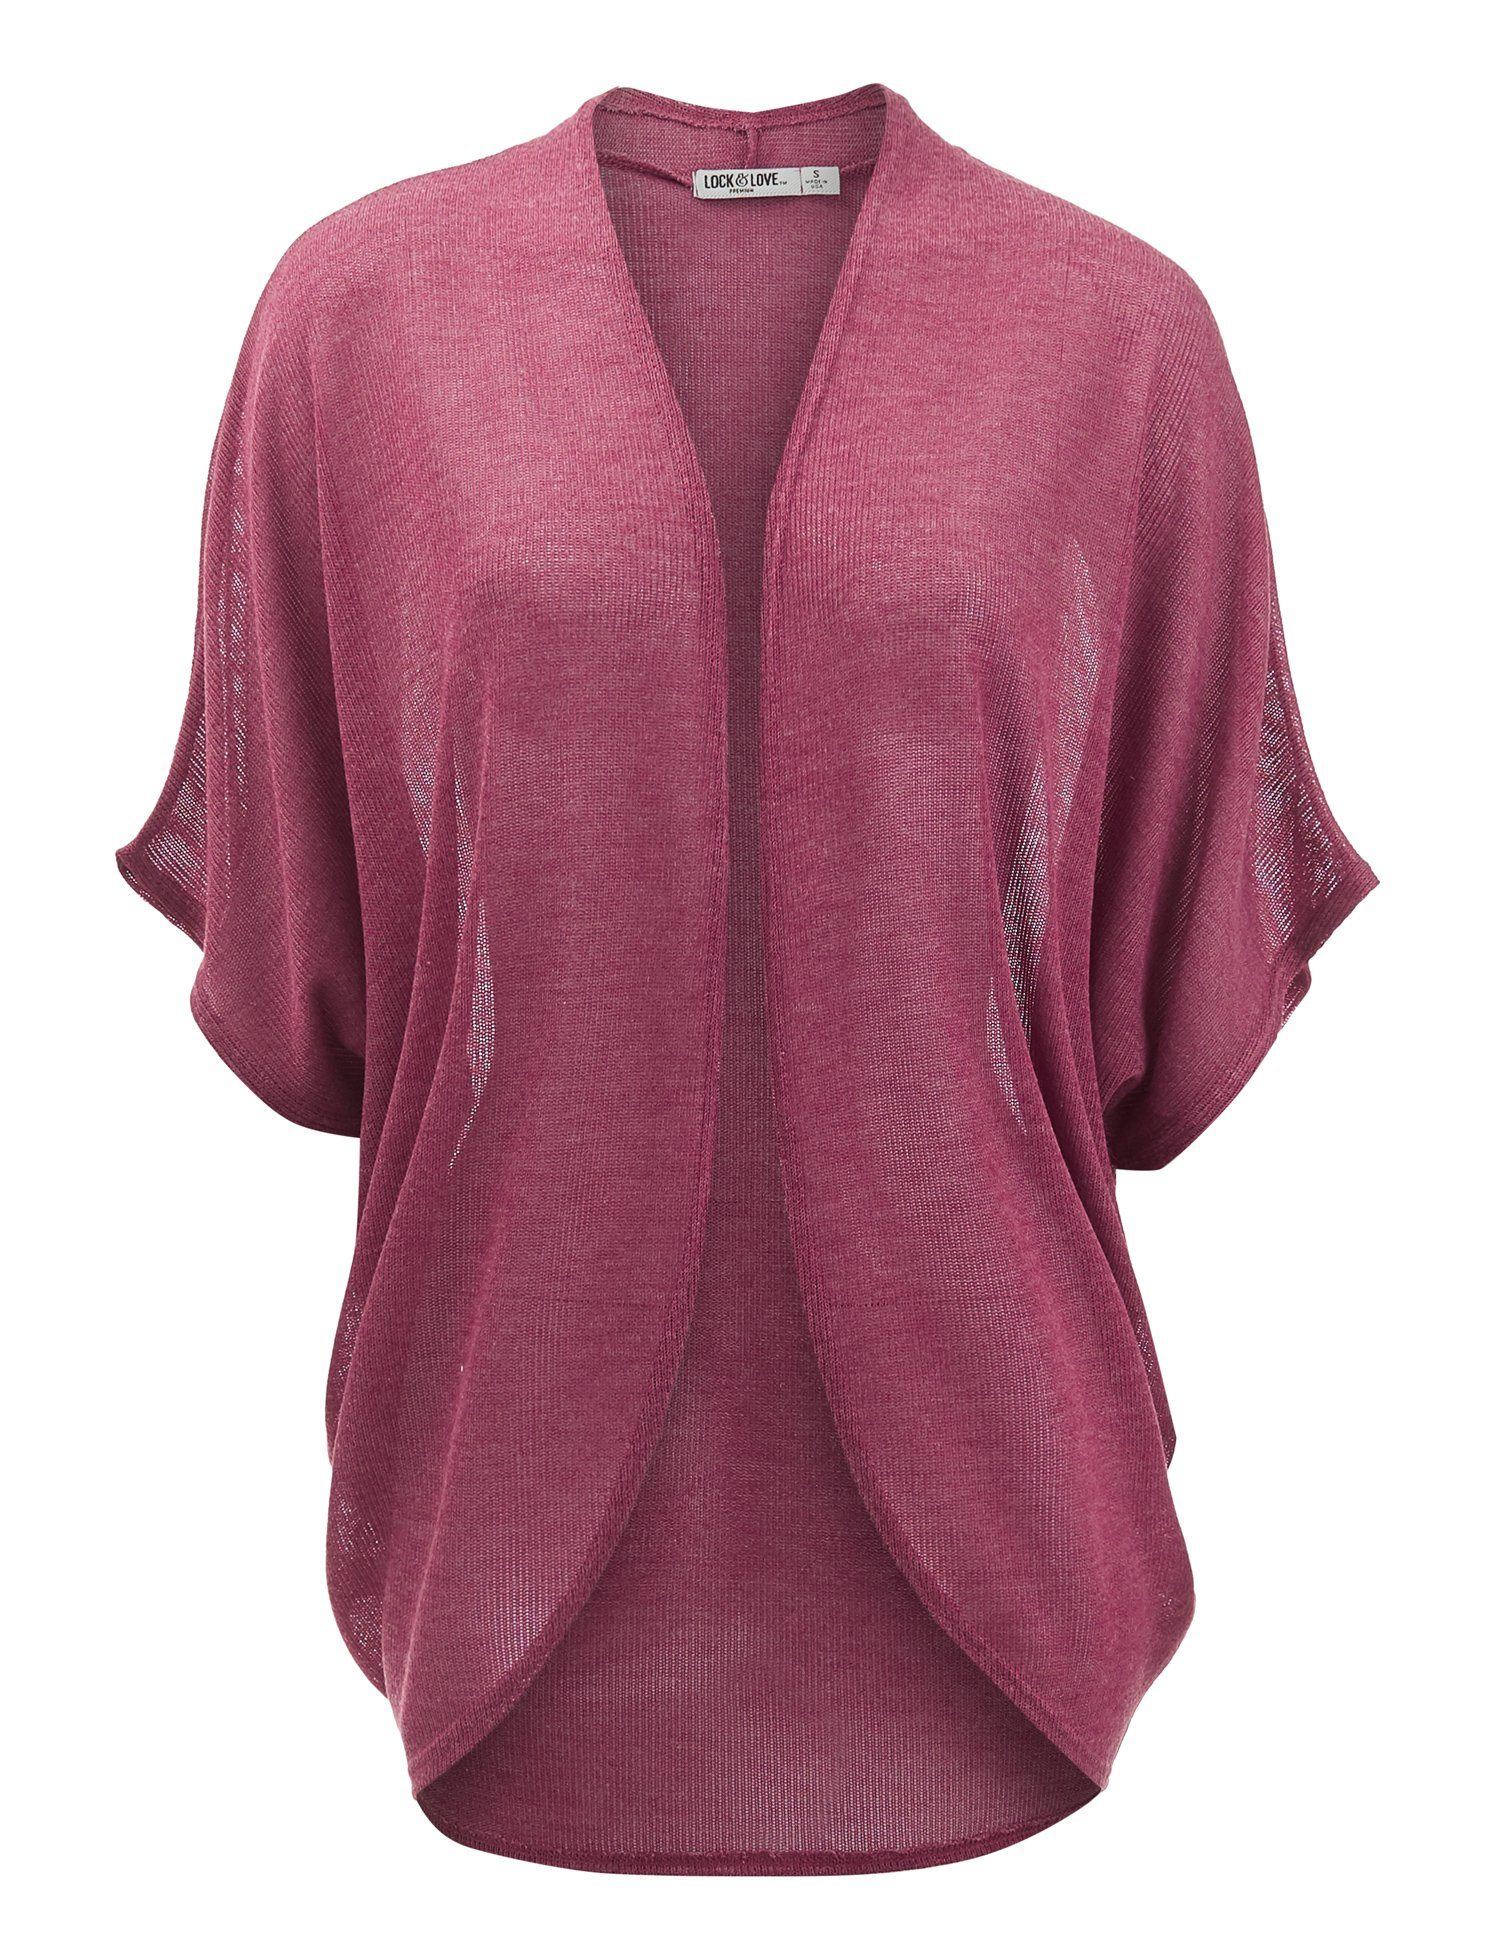 Lock and Love WSK1528 Womens Short Sleeve Open-Front Batwing Cardigan - Made in USA S Wine